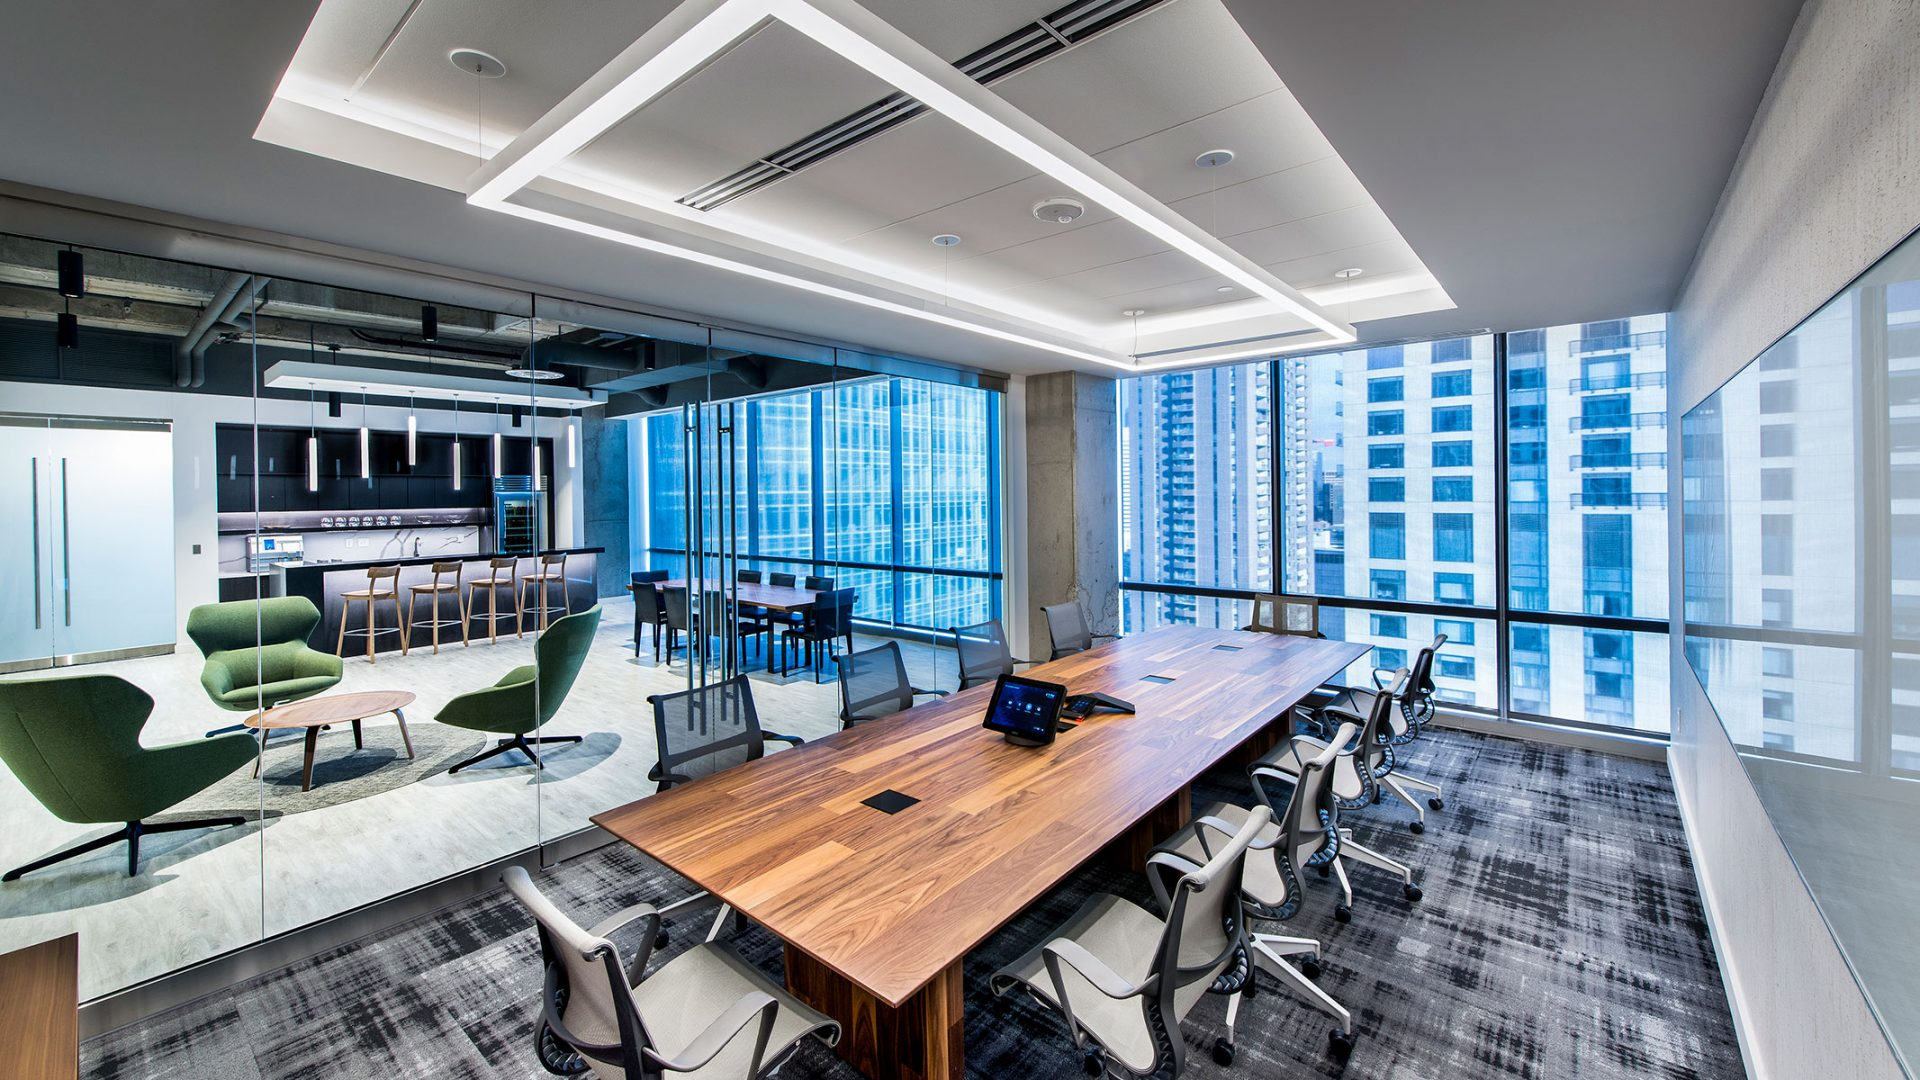 Investment Management Company Denver Corporate Interior Design Conference Room Table